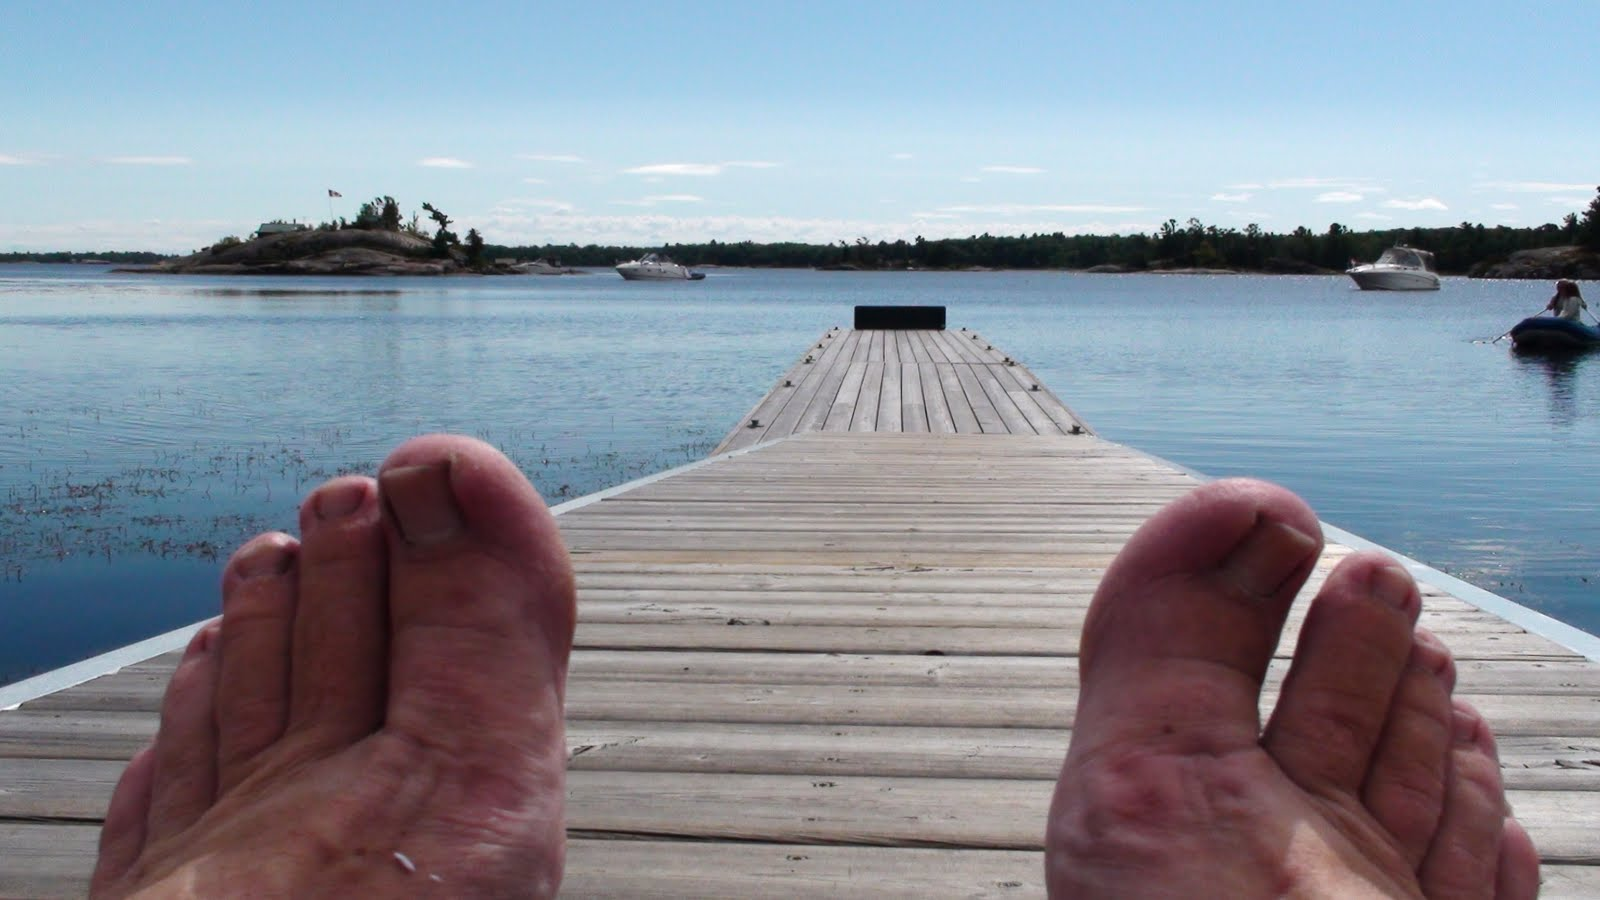 Dock in water looking through the feet